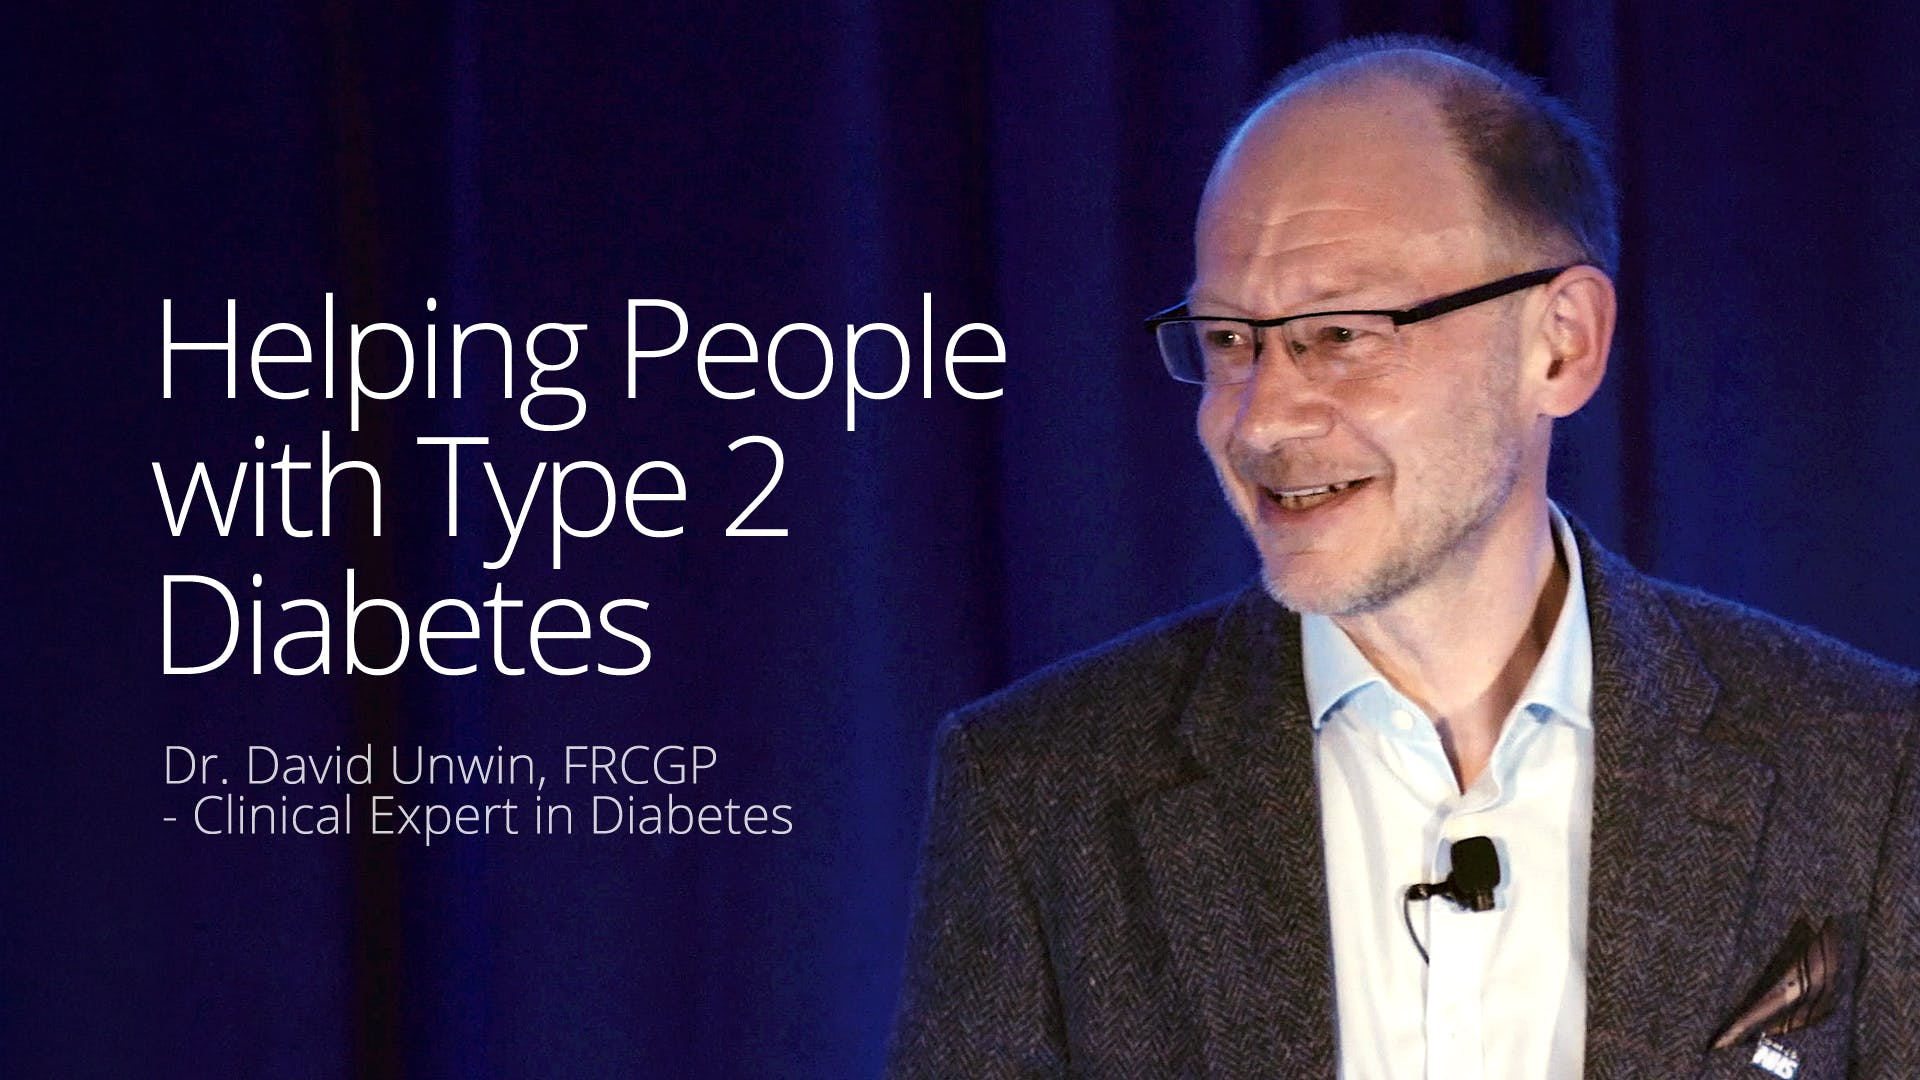 Helping people with type 2 diabetes